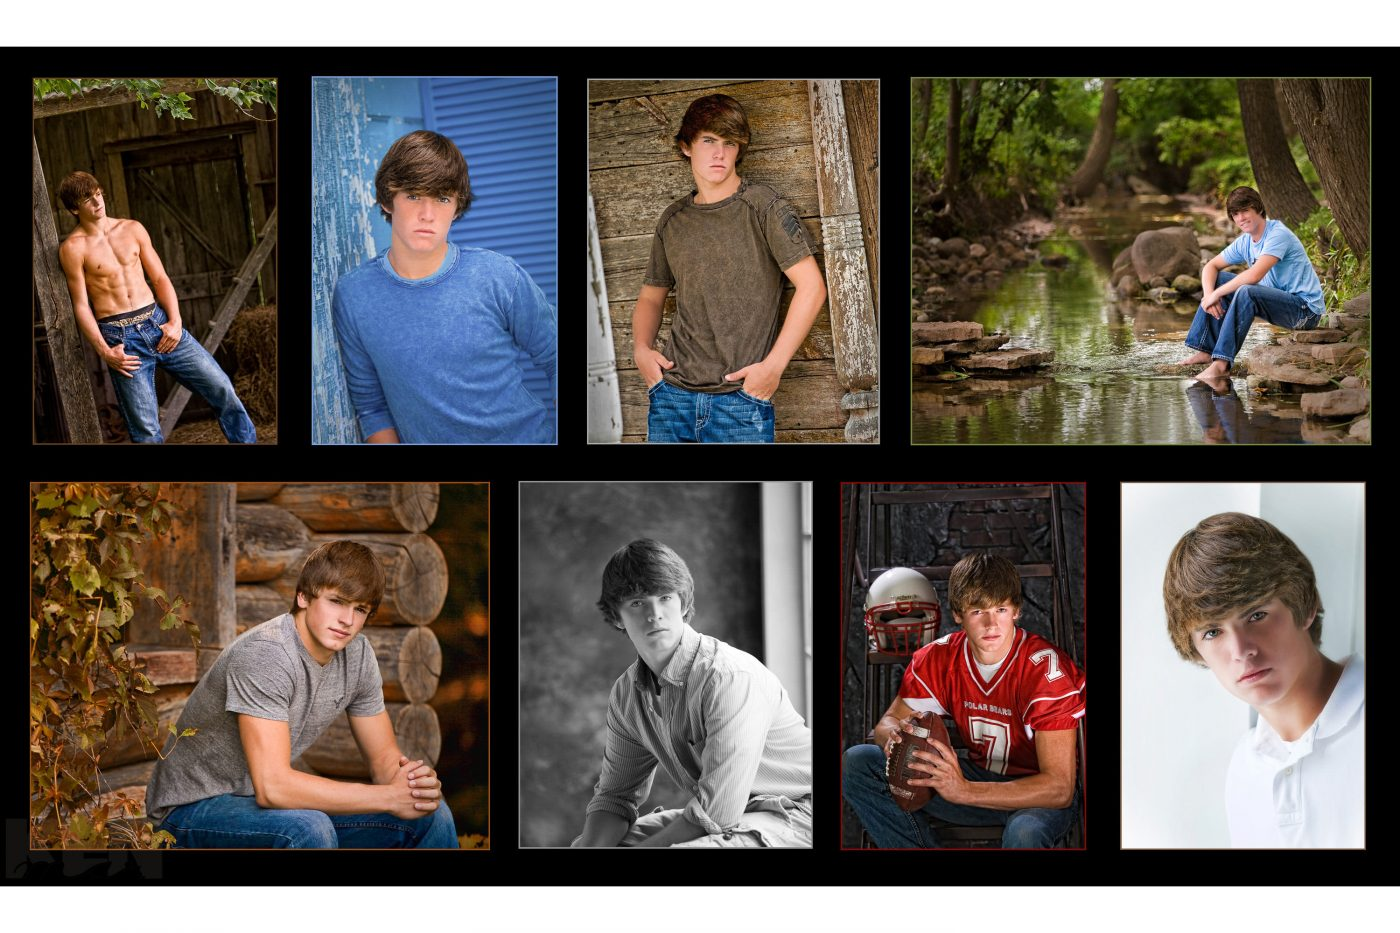 8 images high school senior boy